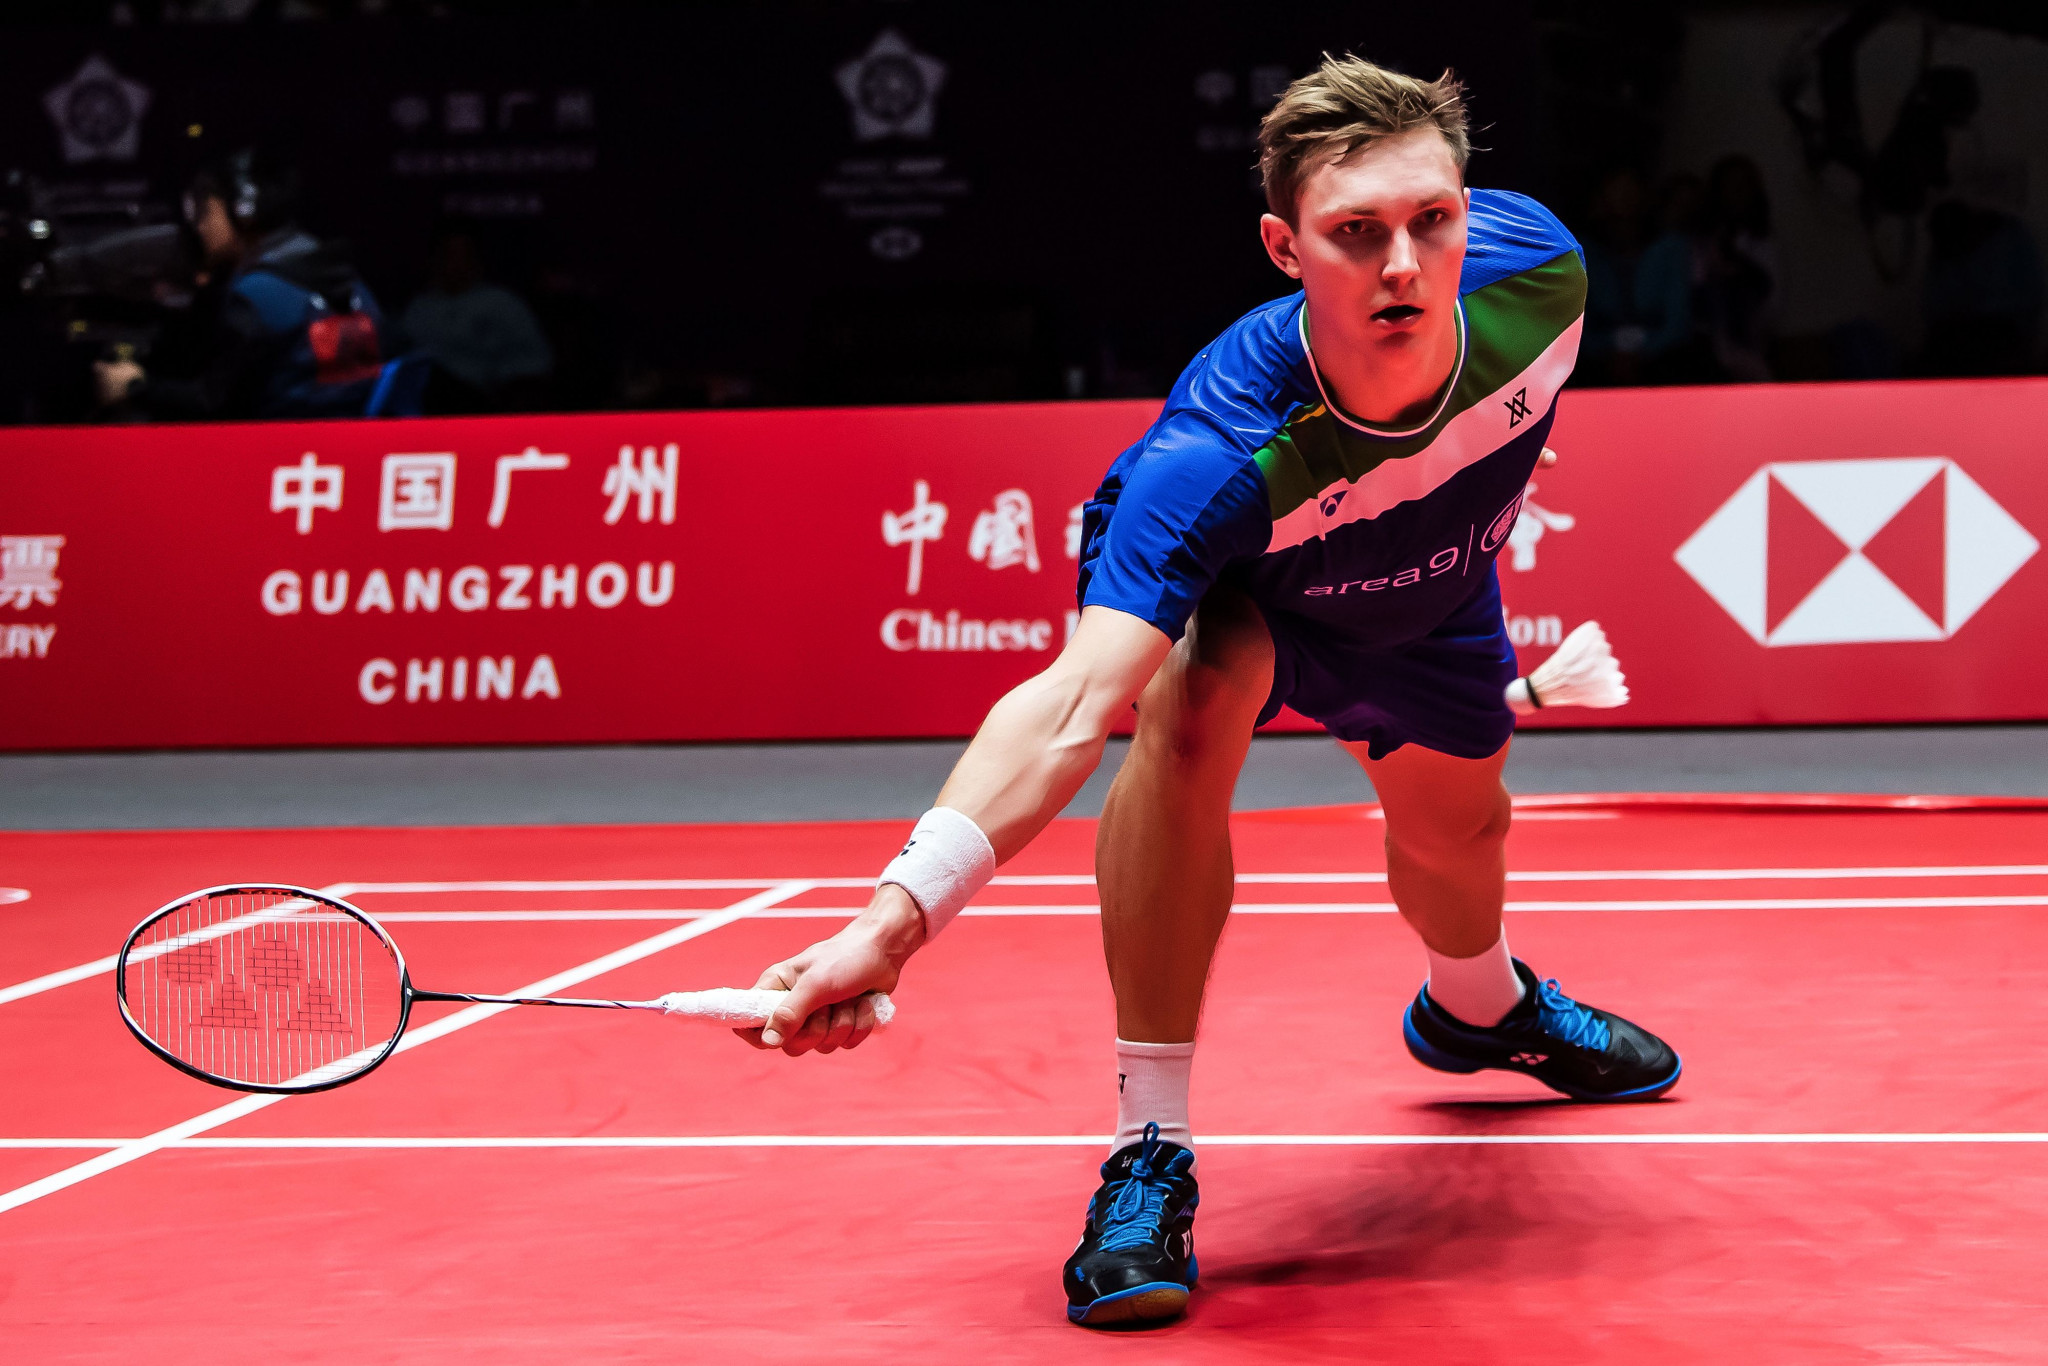 Denmark's Viktor Axelsen breezed through to the semi-finals of the men's singles event ©Getty Images